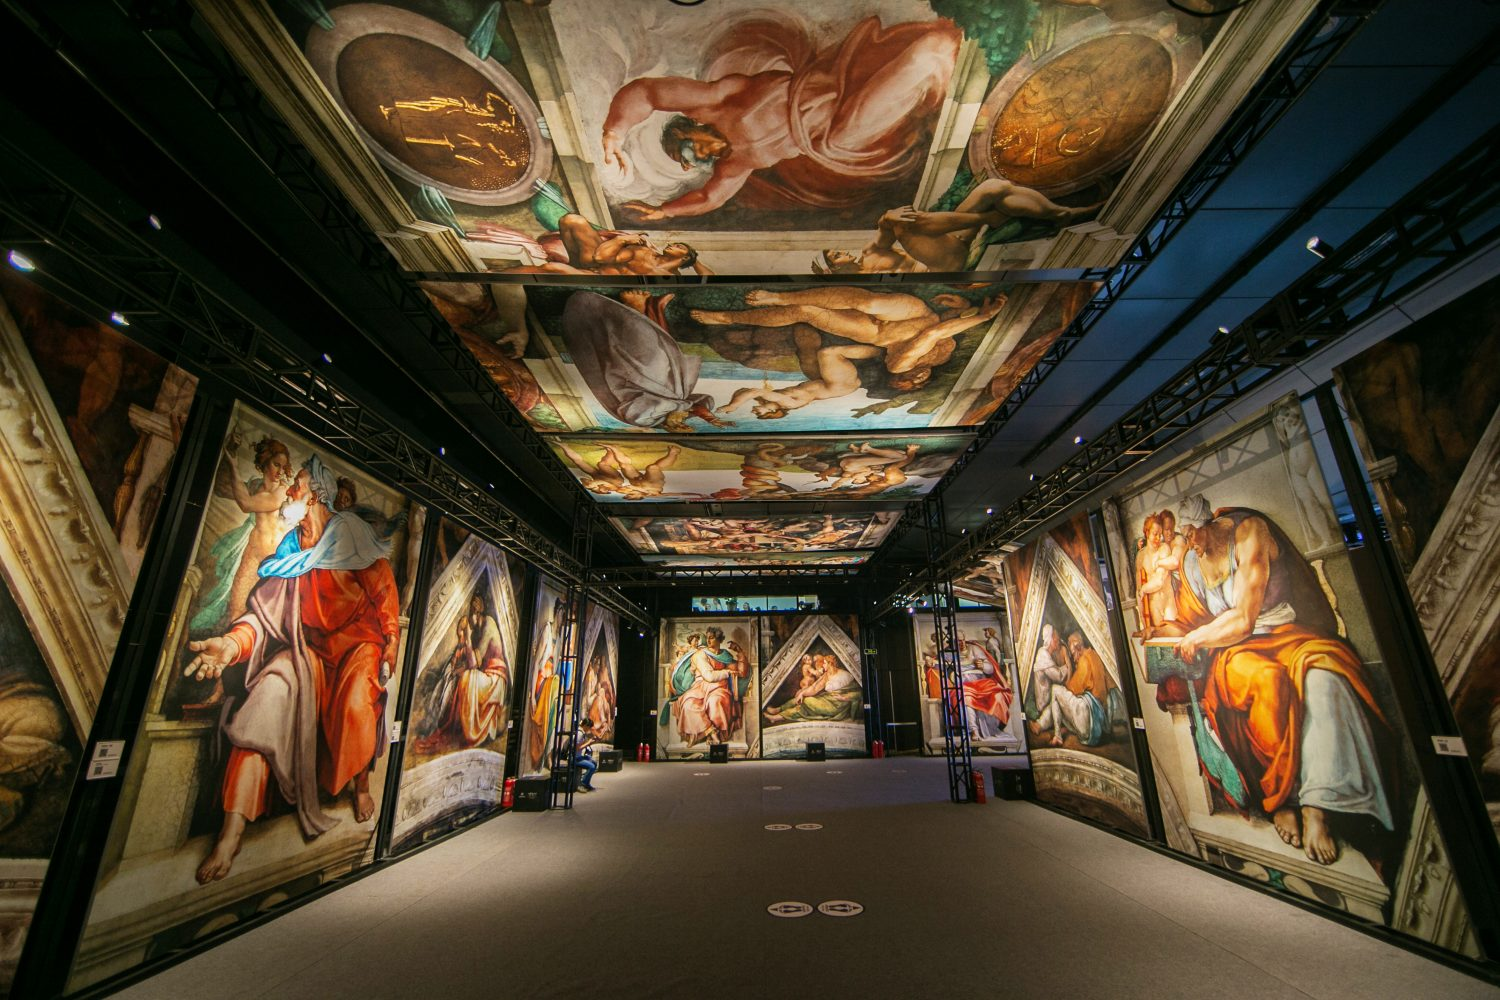 Stanley Marketplace is bringing the Sistine Chapel to its 10,000-square-foot hangar